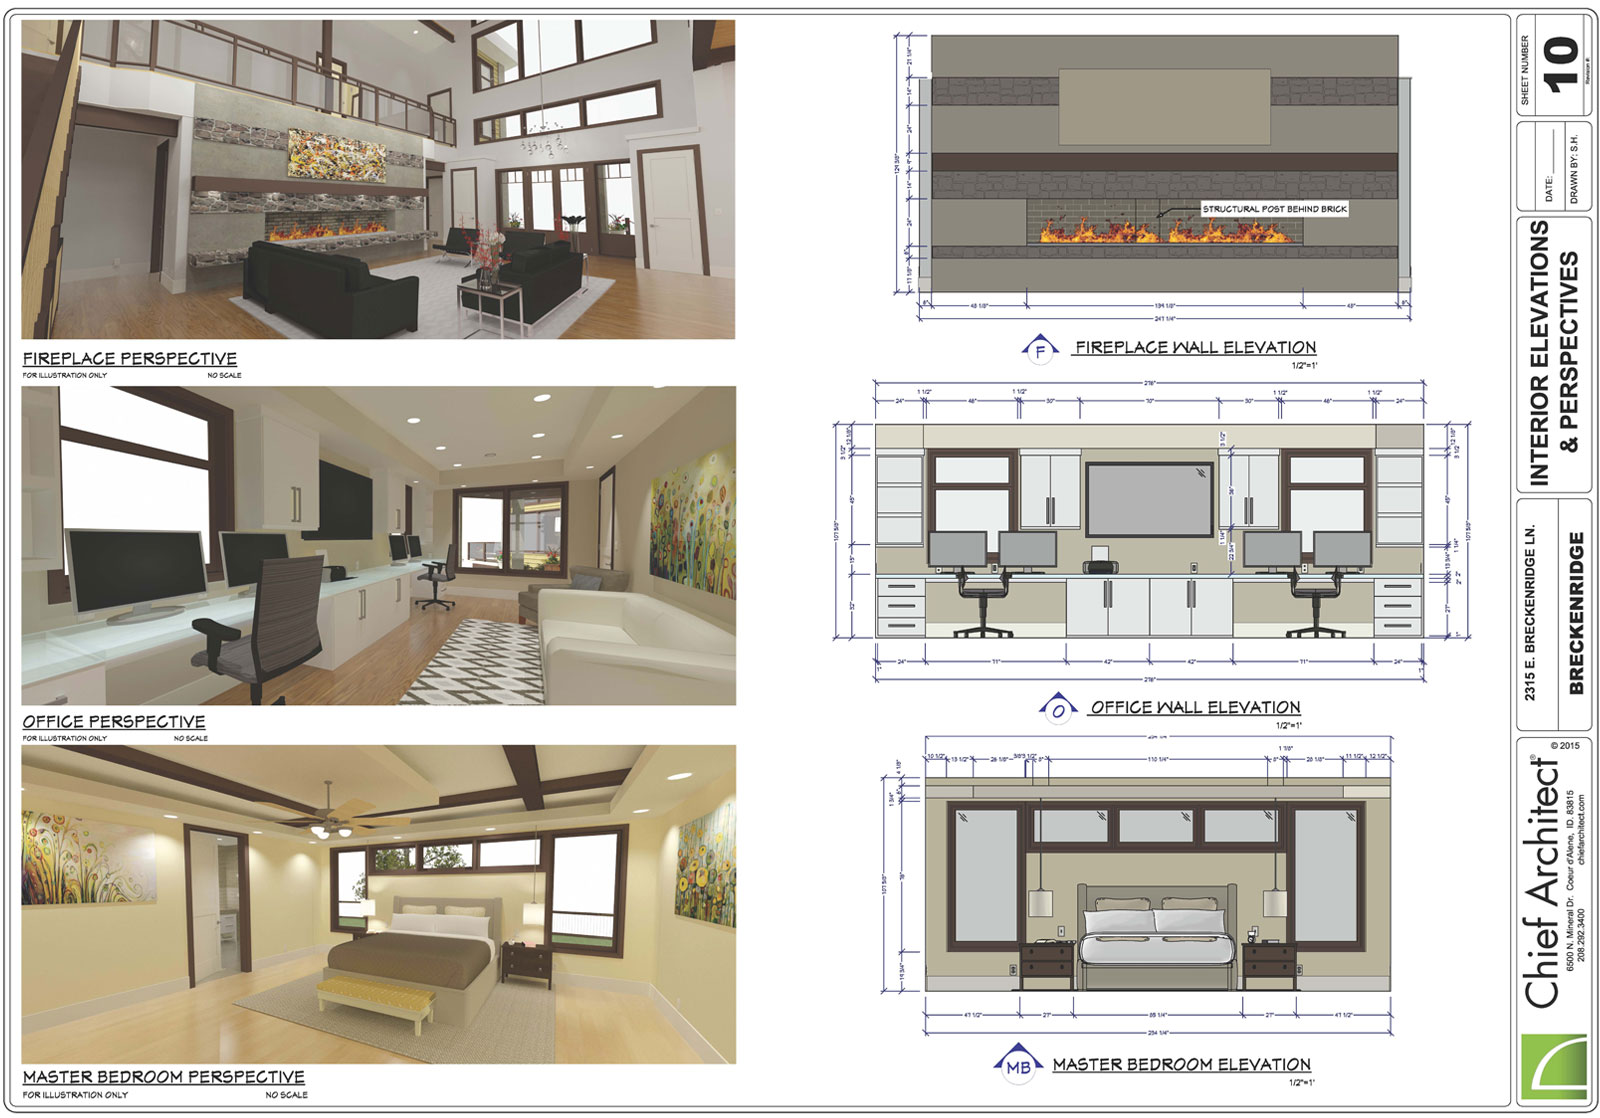 Interior design layout with wall elevations and dimensions